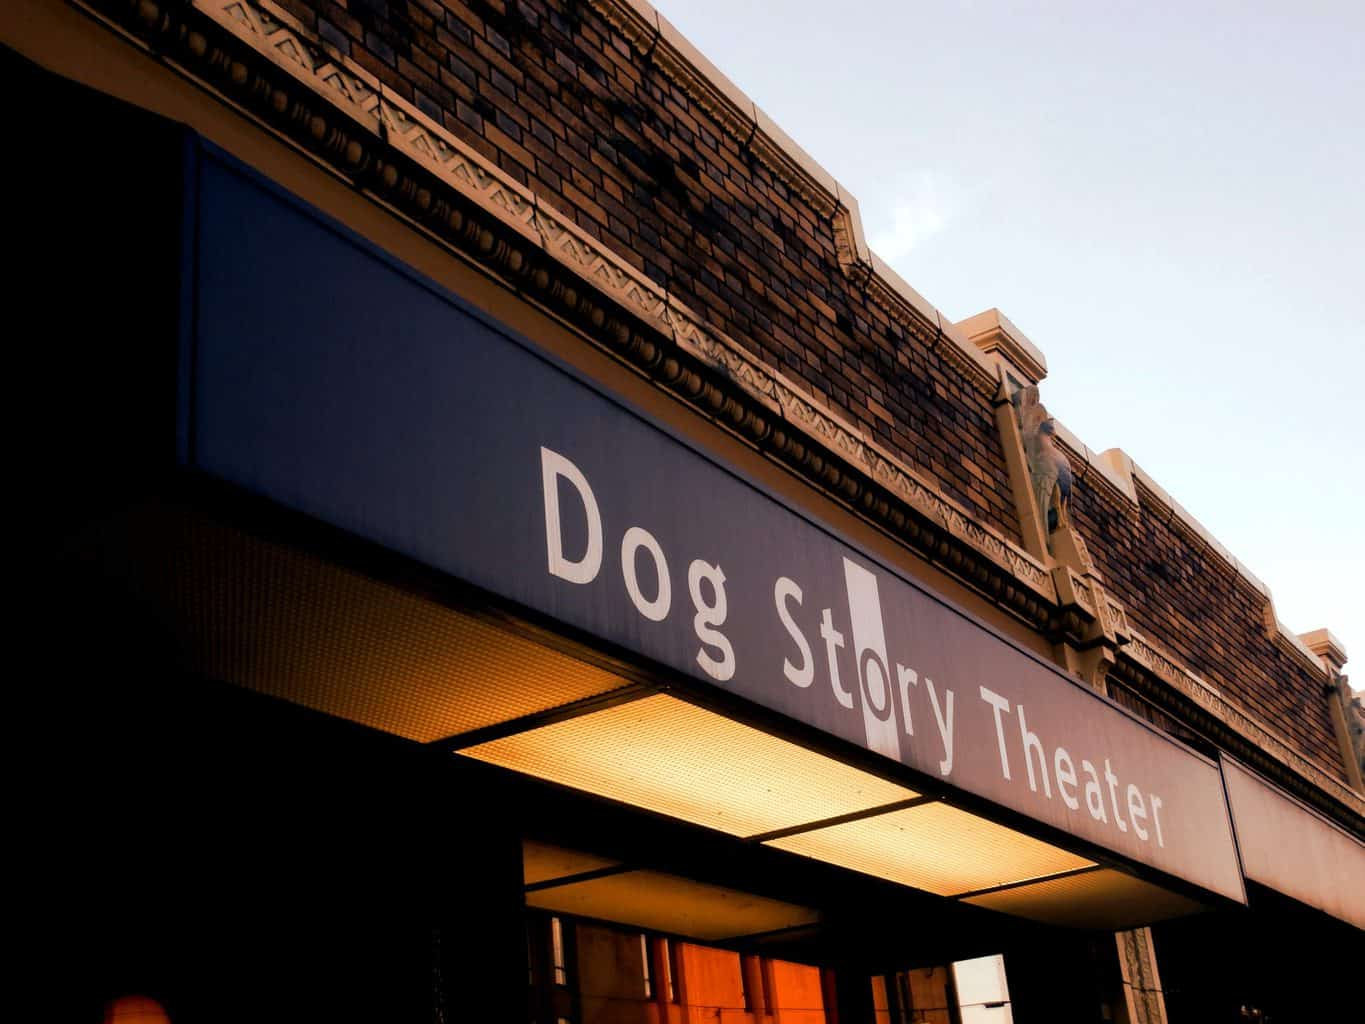 DST 1 scaled Dog Story Theater